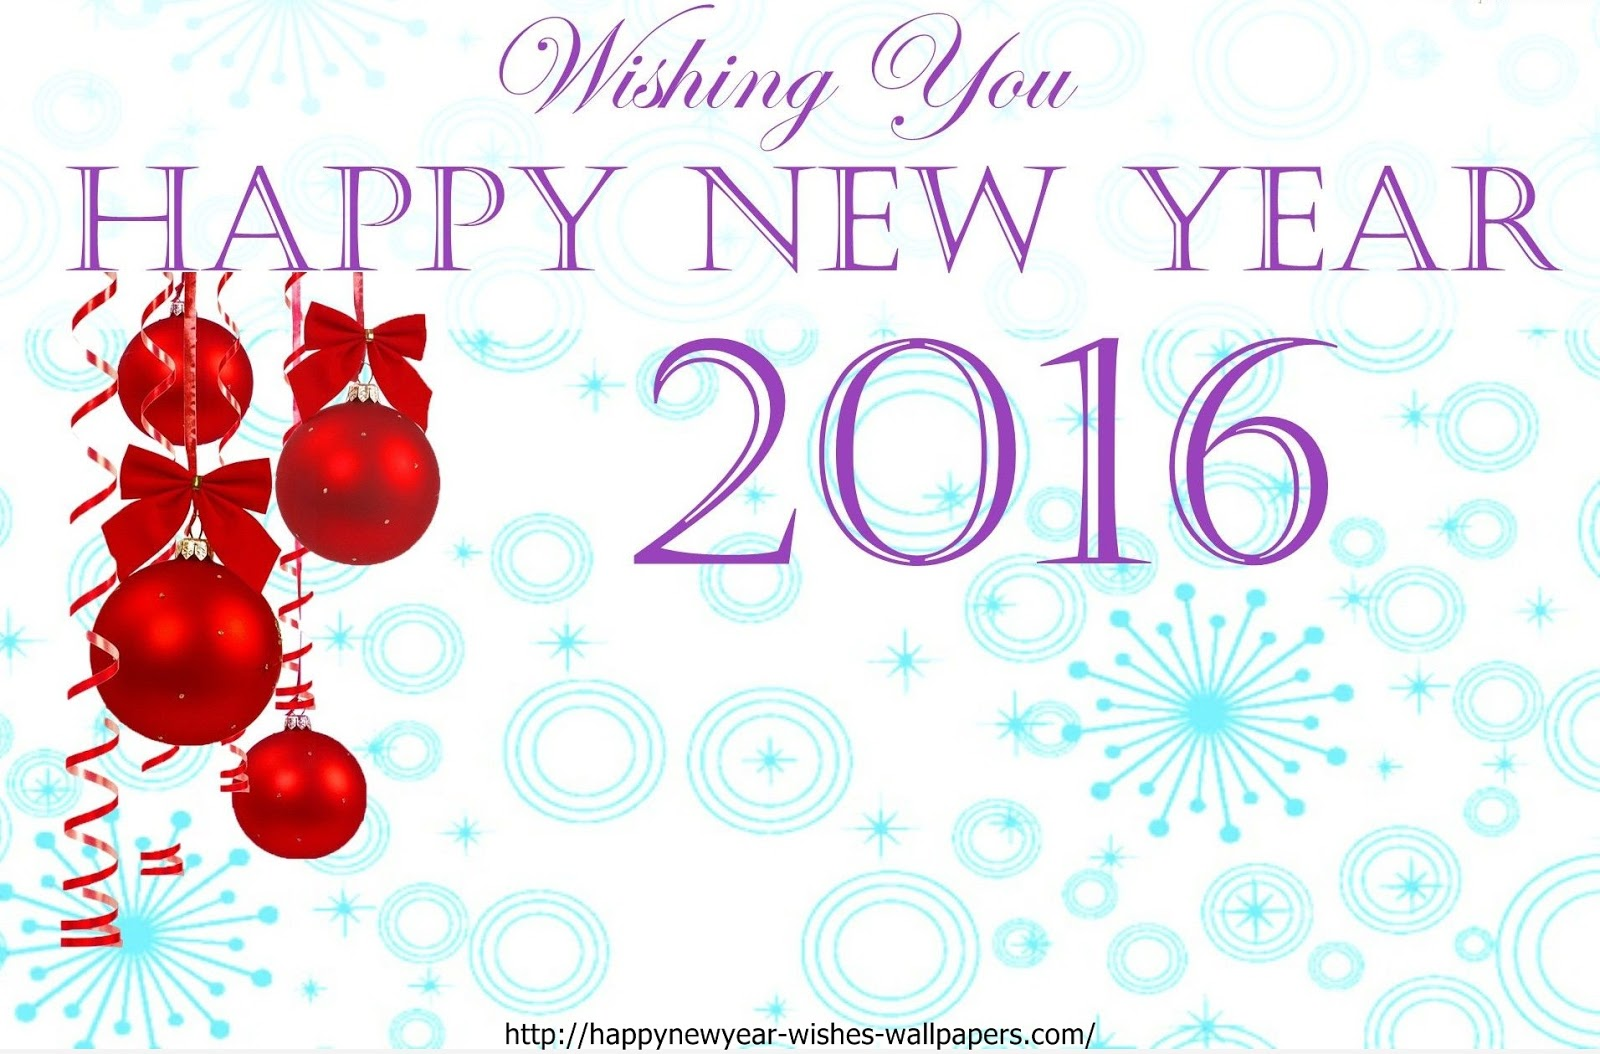 New year 2016 wallpapers wishes happy new year gretings card happy new year gretings card designs for your family hd images m4hsunfo Gallery